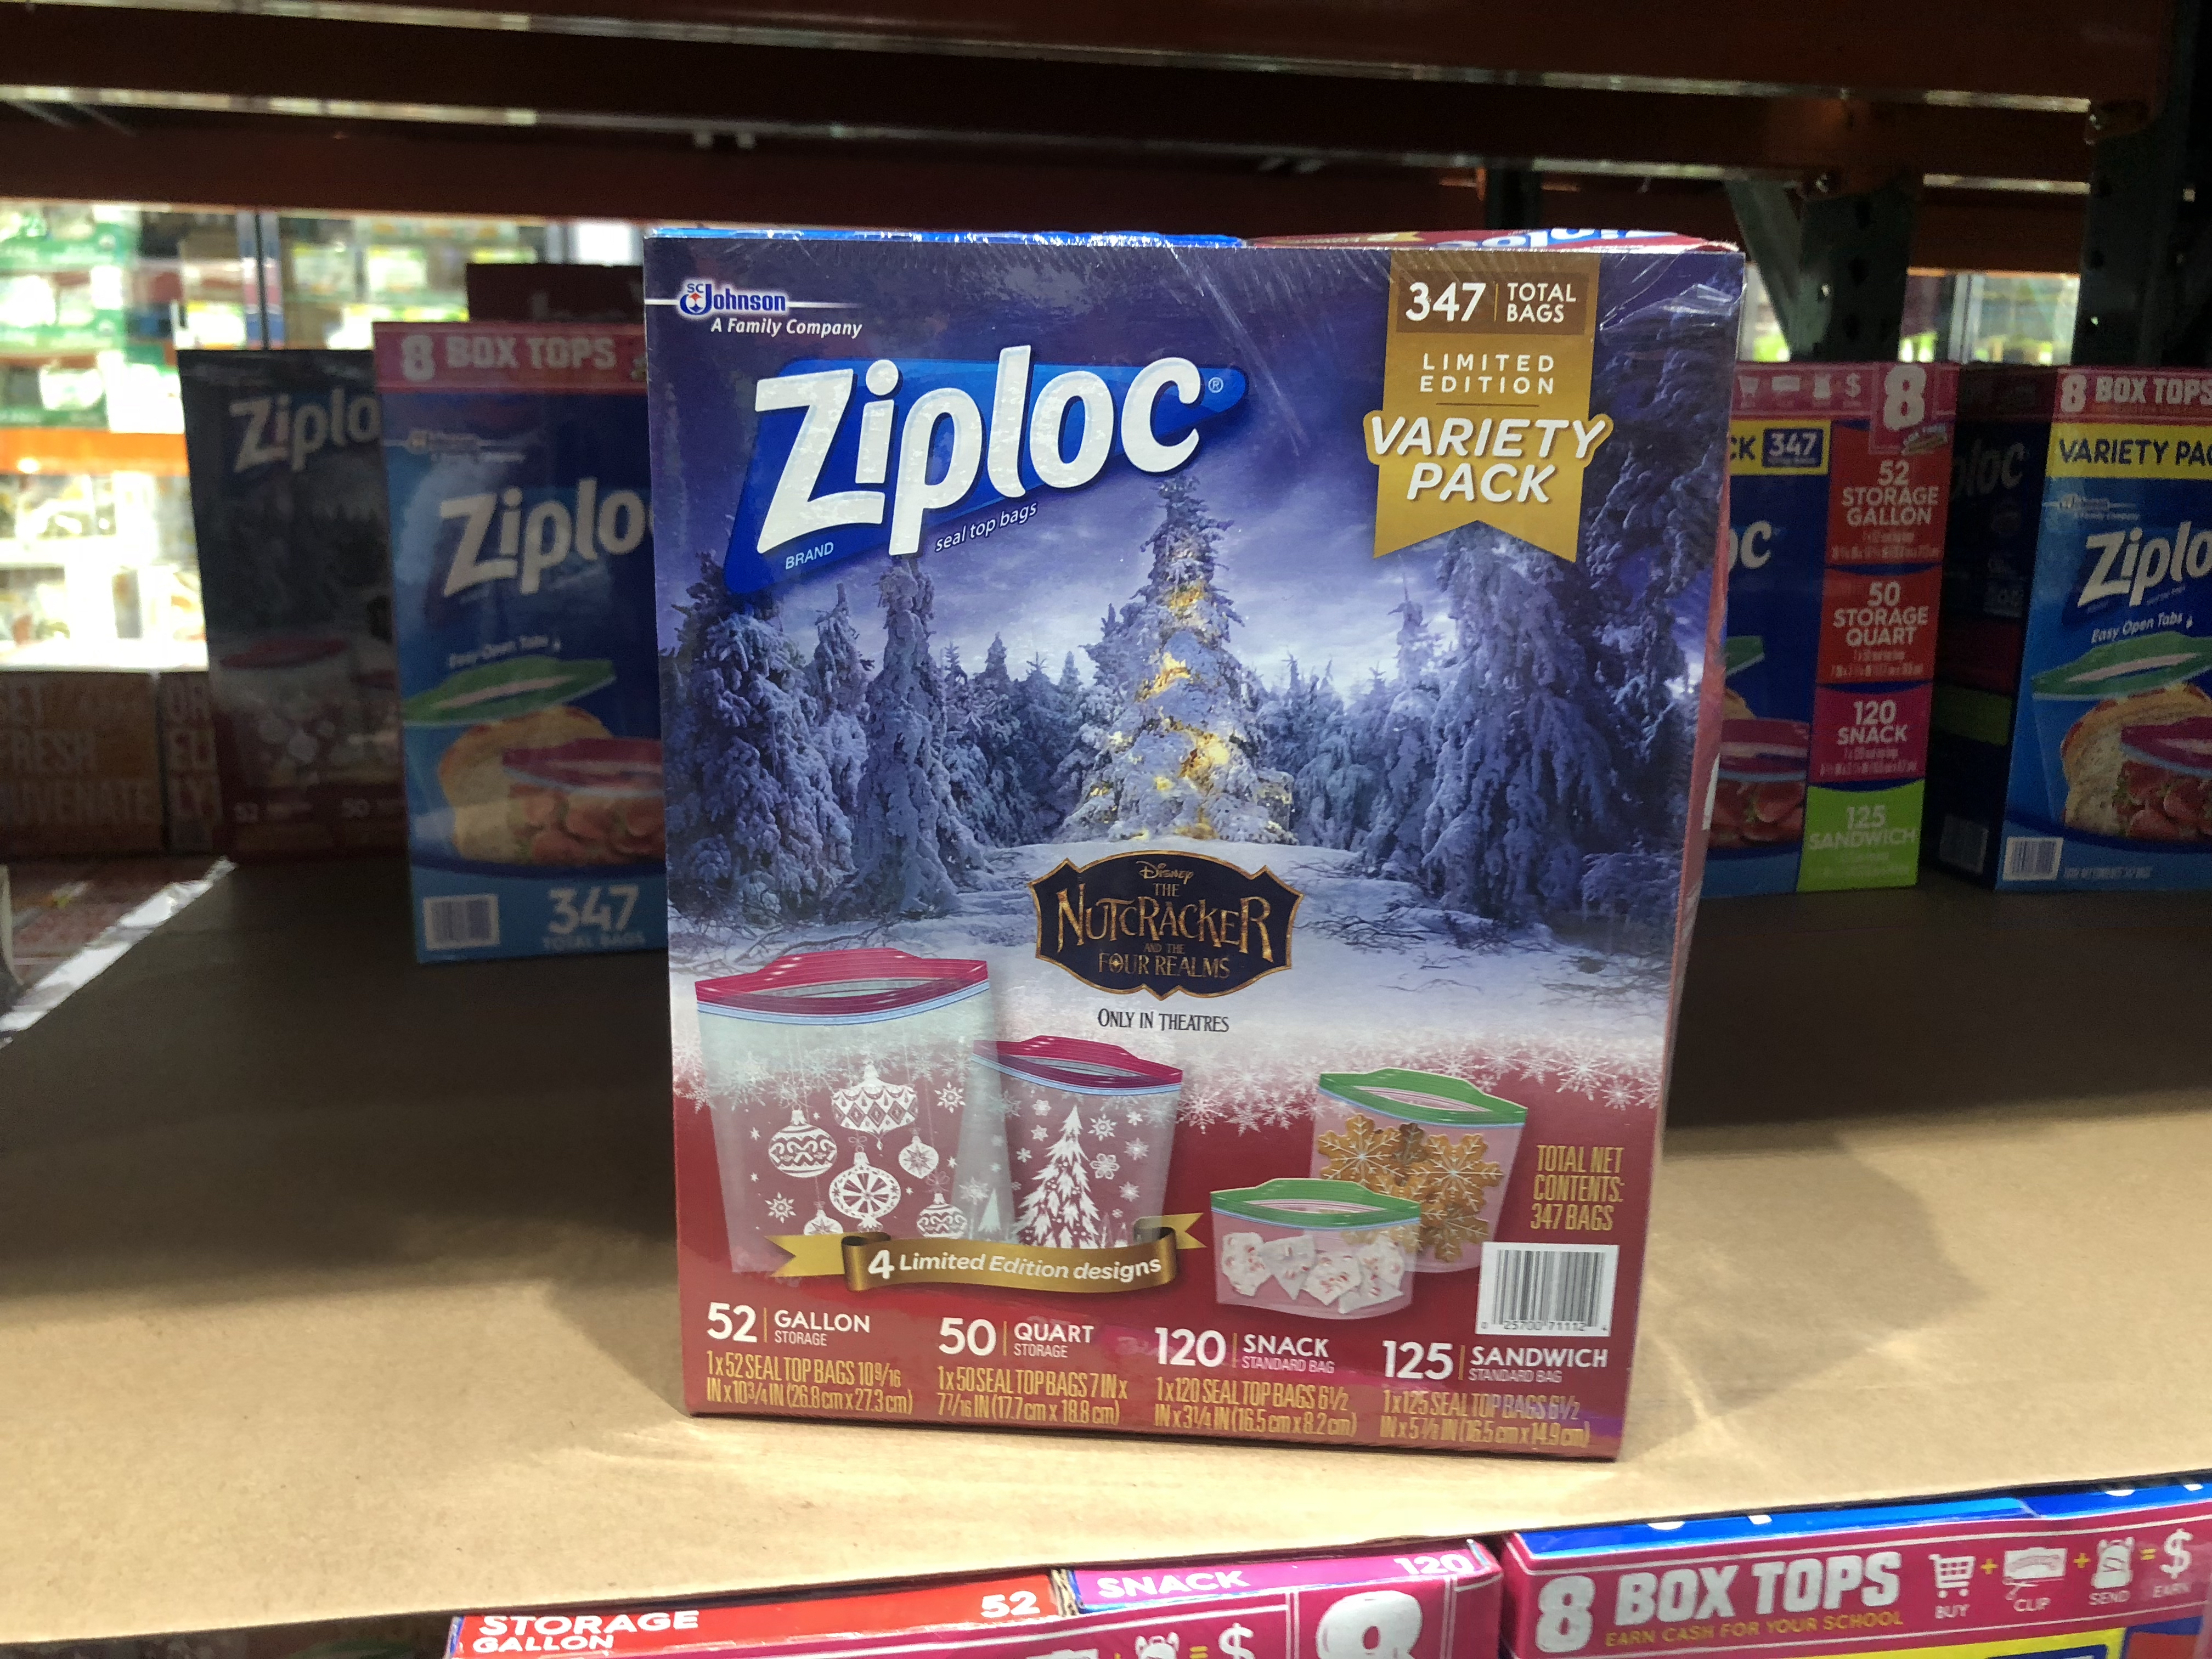 October 2018 keto Costco deals – Ziploc bags at Costco